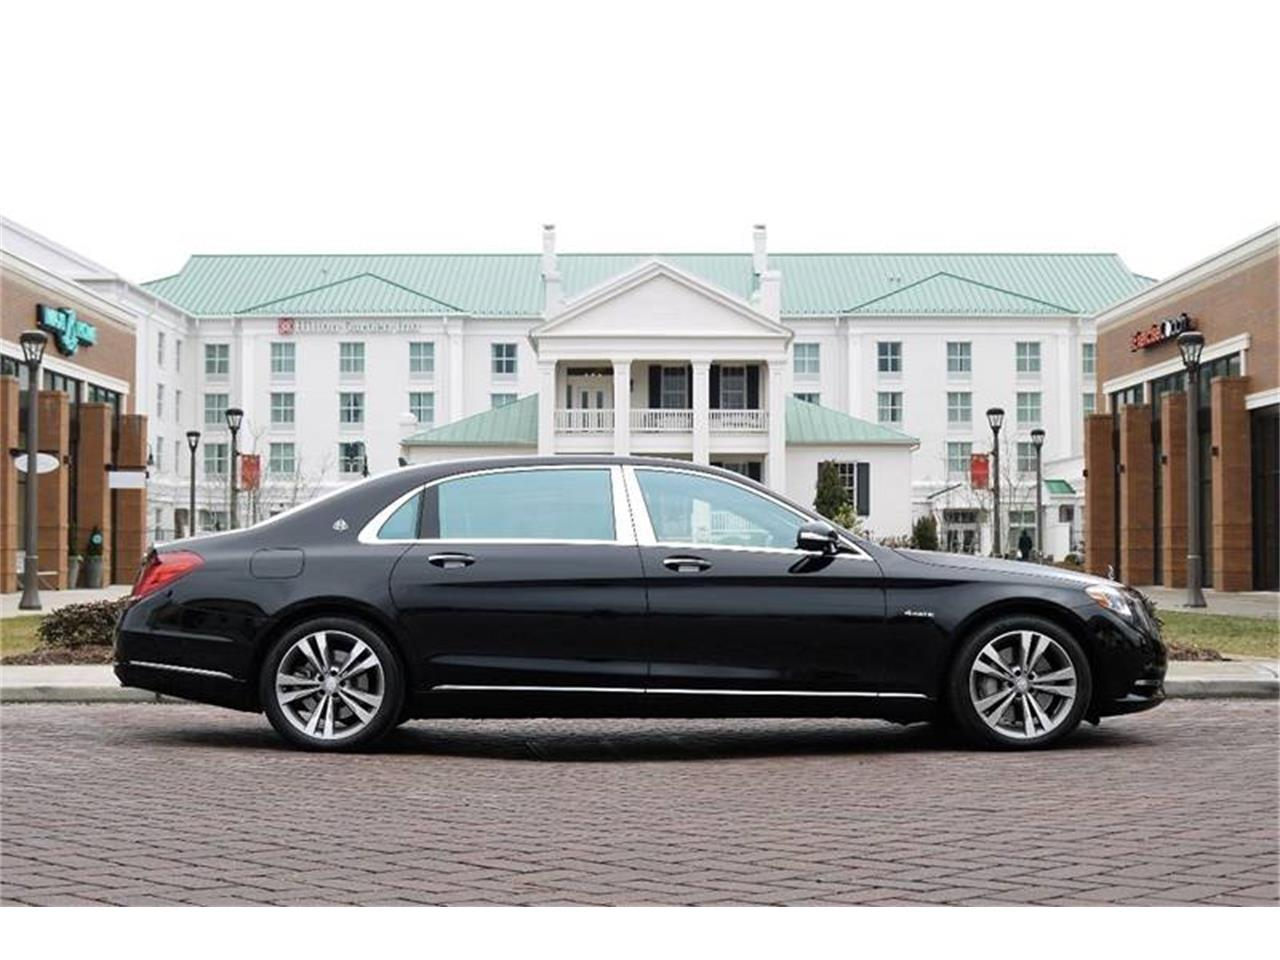 Large Picture of '17 Mercedes-Benz S-Class - $169,000.00 Offered by Arde Motorcars - MOD1